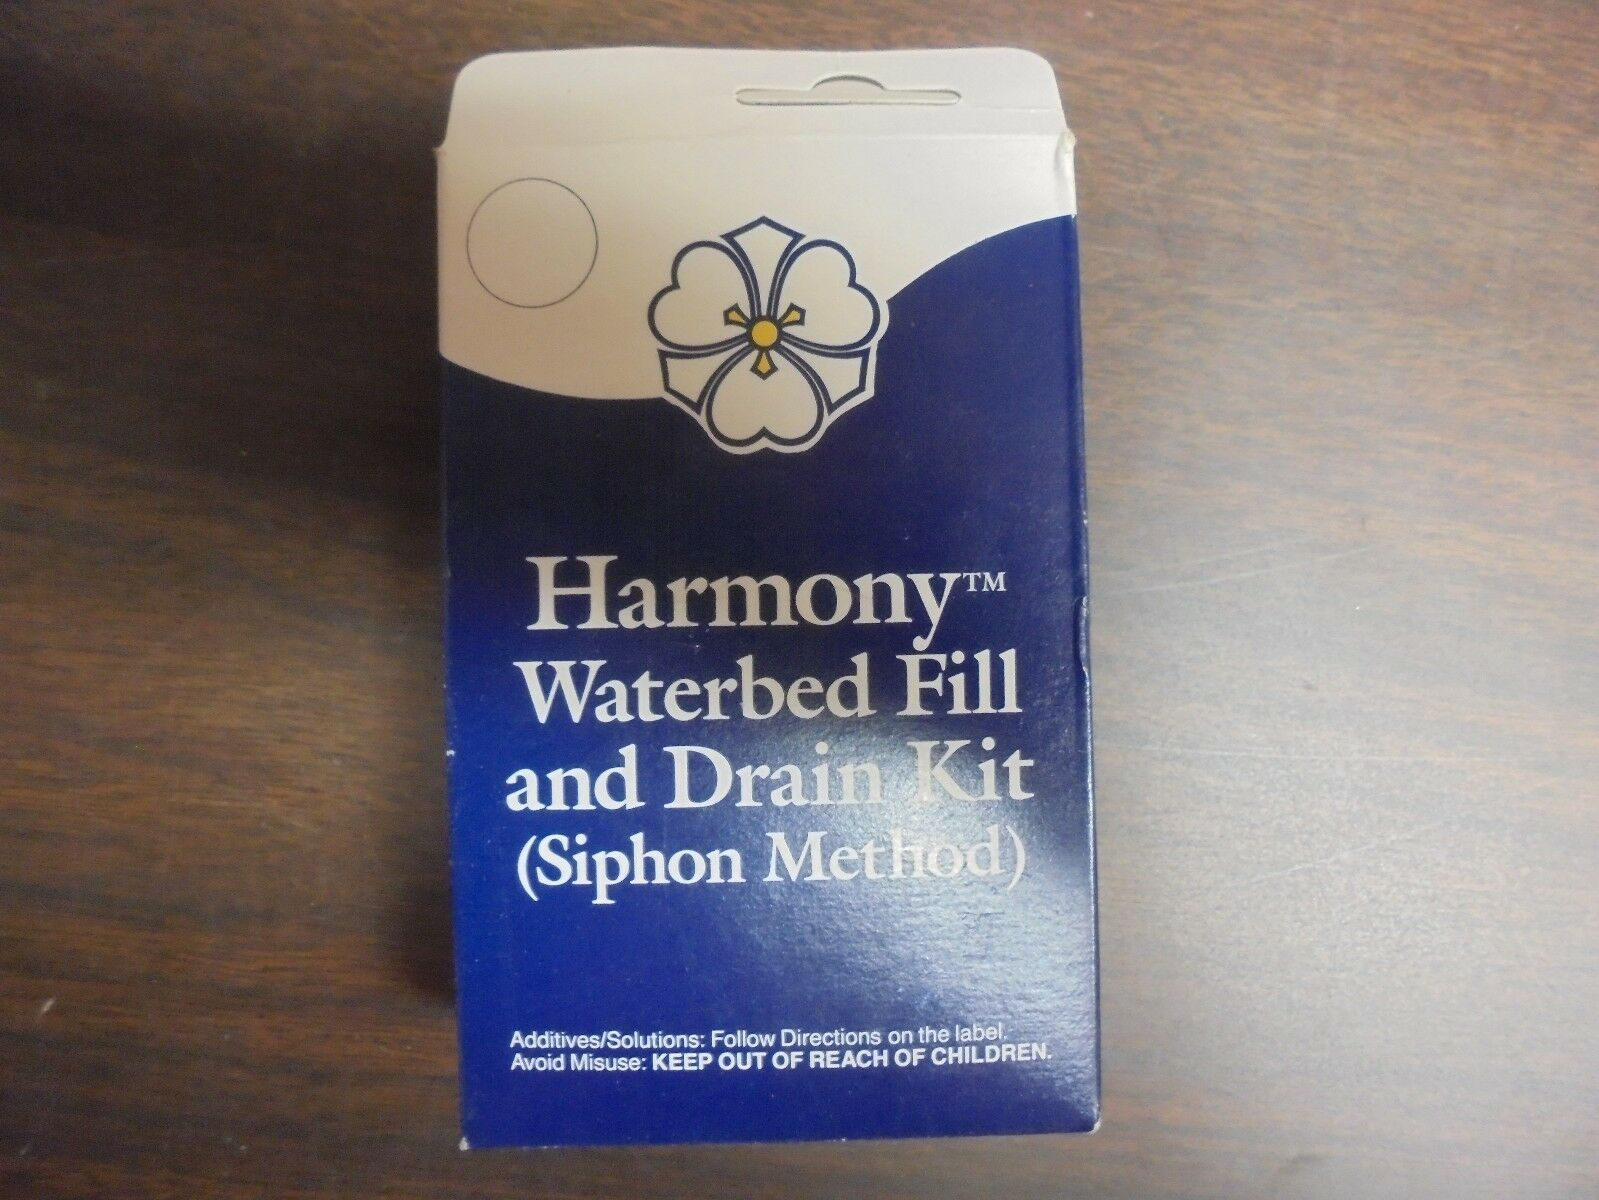 Harmony Waterbed Fill and Drain Kit